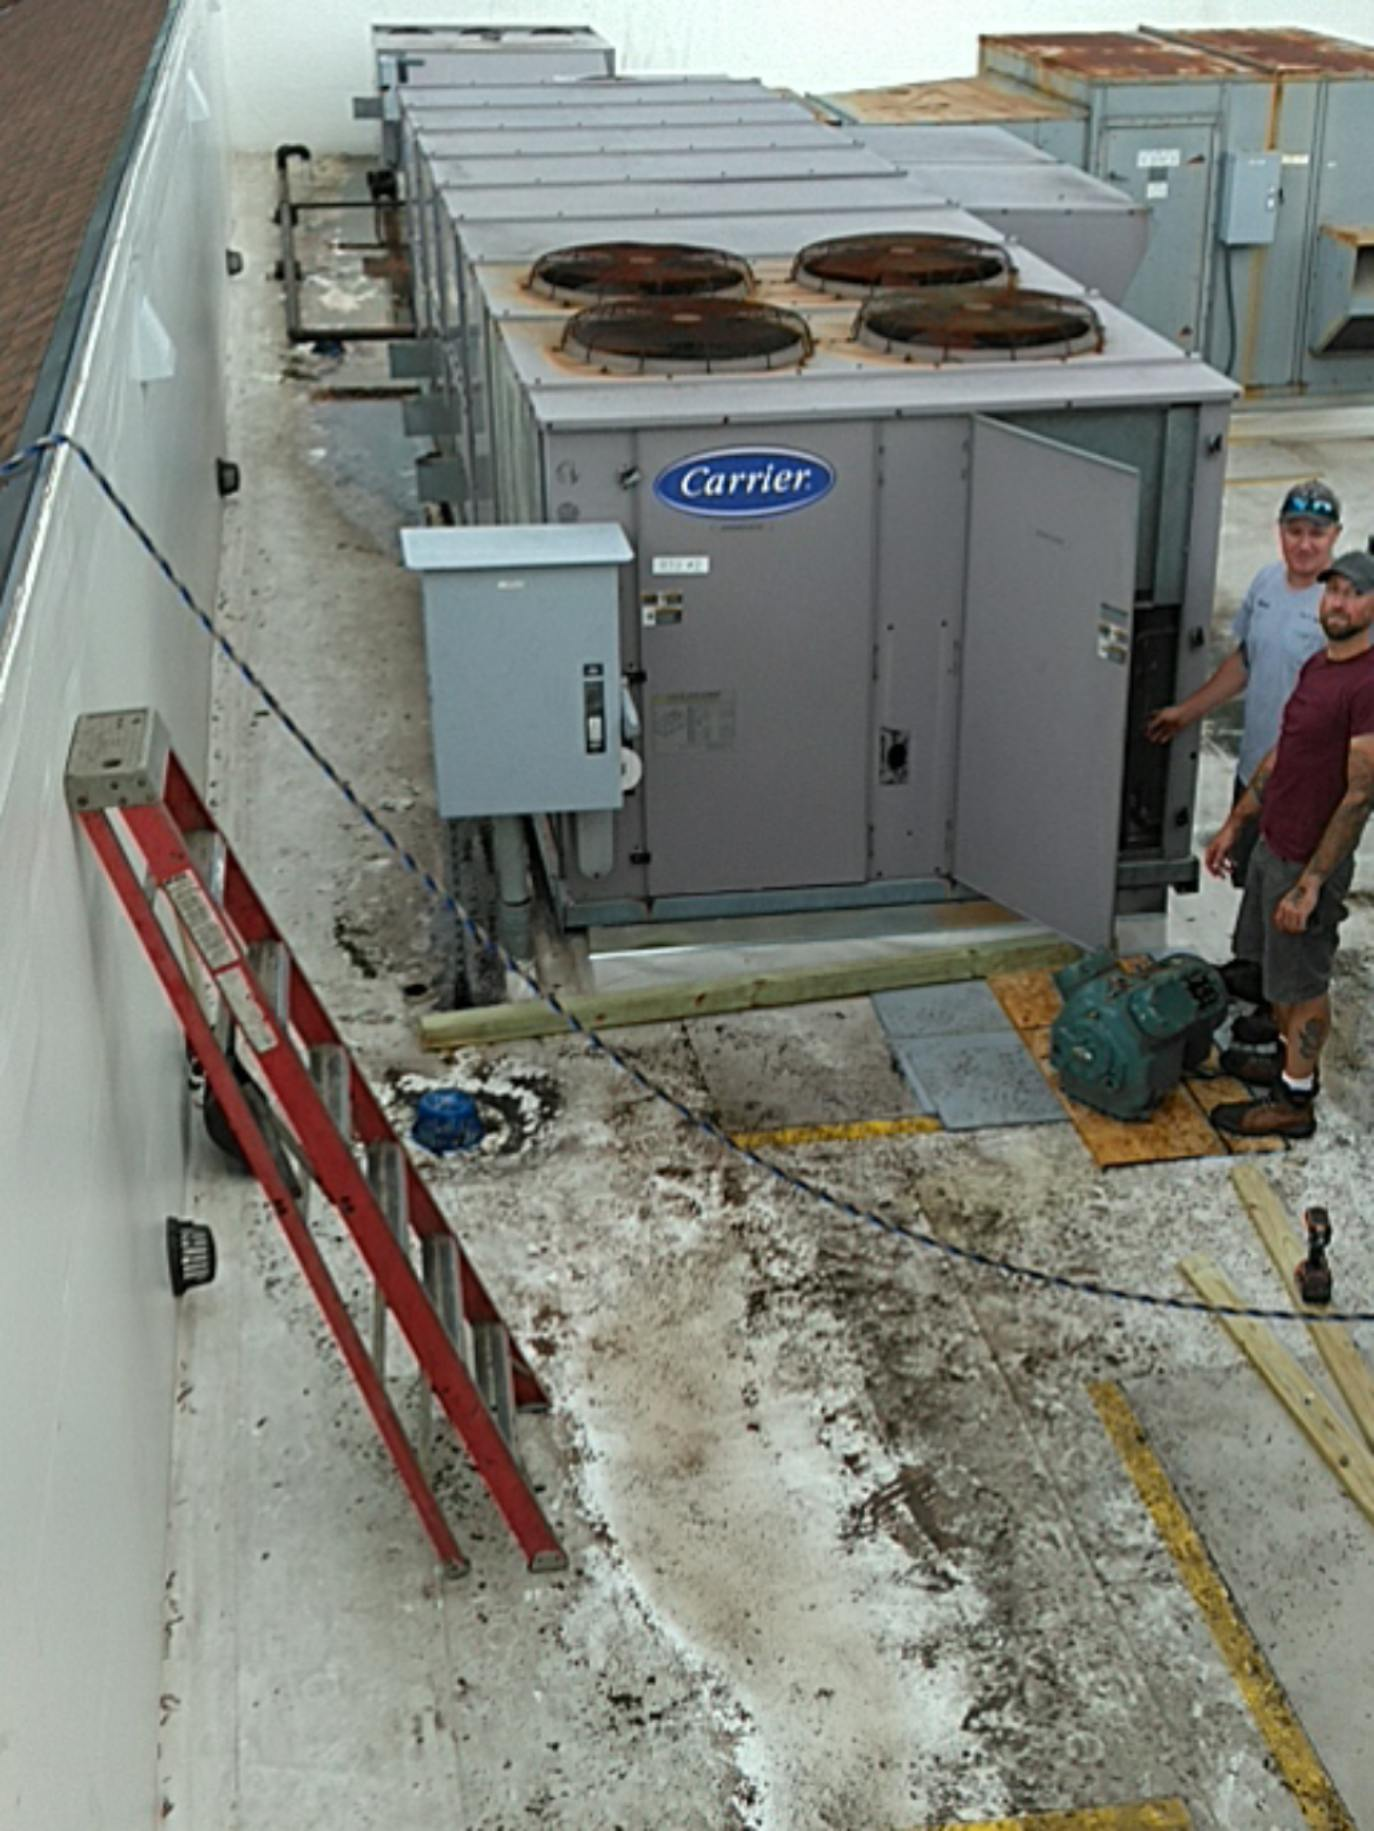 Repairing Large commercial HVAC units